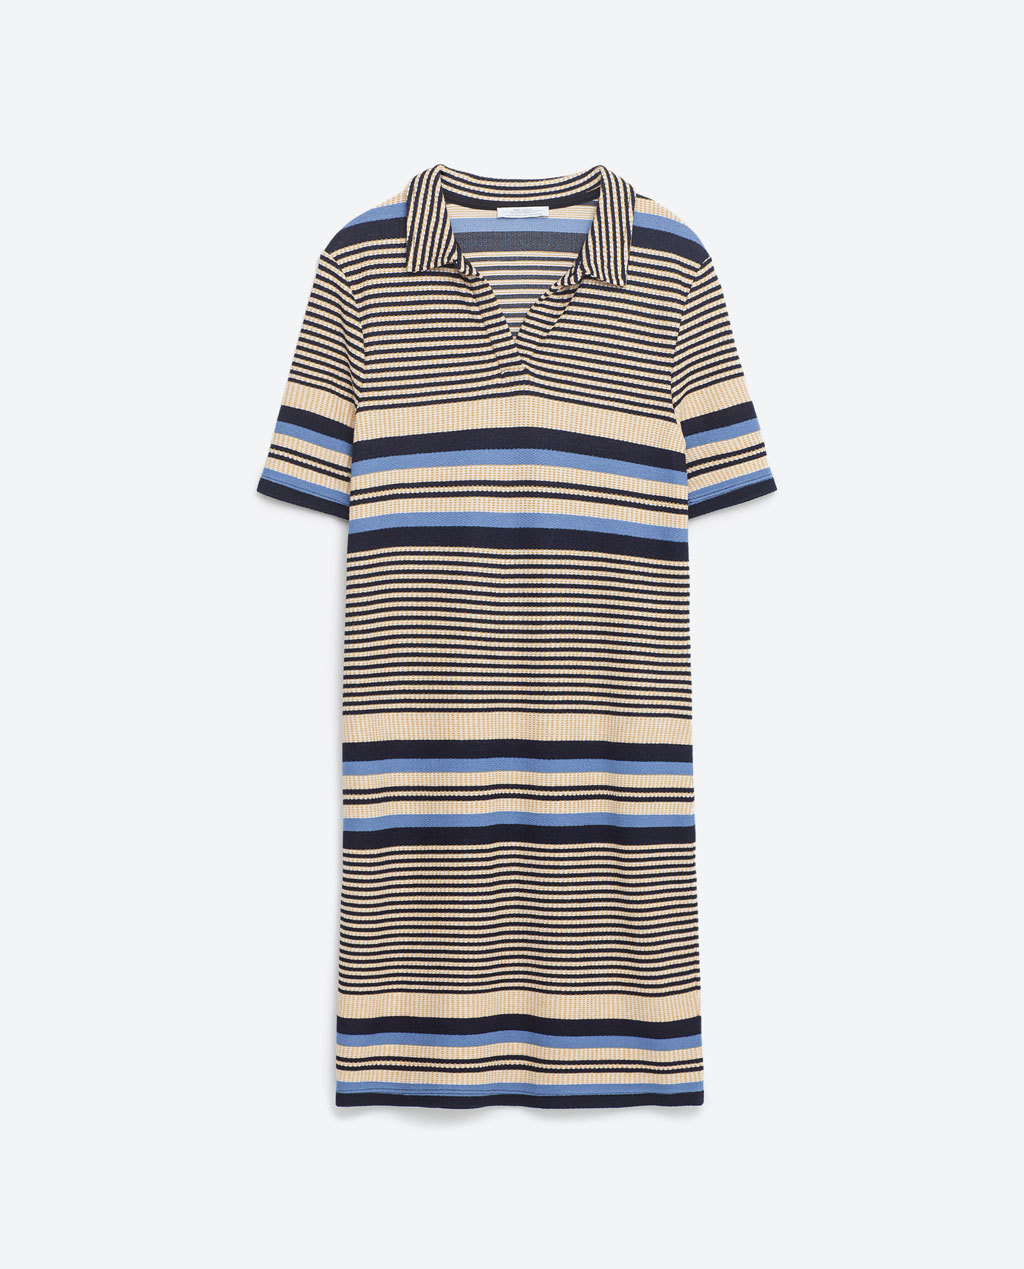 Polo Neck Dress - style: t-shirt; neckline: shirt collar/peter pan/zip with opening; pattern: horizontal stripes; secondary colour: nude; predominant colour: black; occasions: casual; length: just above the knee; fit: body skimming; fibres: viscose/rayon - stretch; sleeve length: short sleeve; sleeve style: standard; pattern type: fabric; texture group: jersey - stretchy/drapey; multicoloured: multicoloured; season: s/s 2016; wardrobe: basic